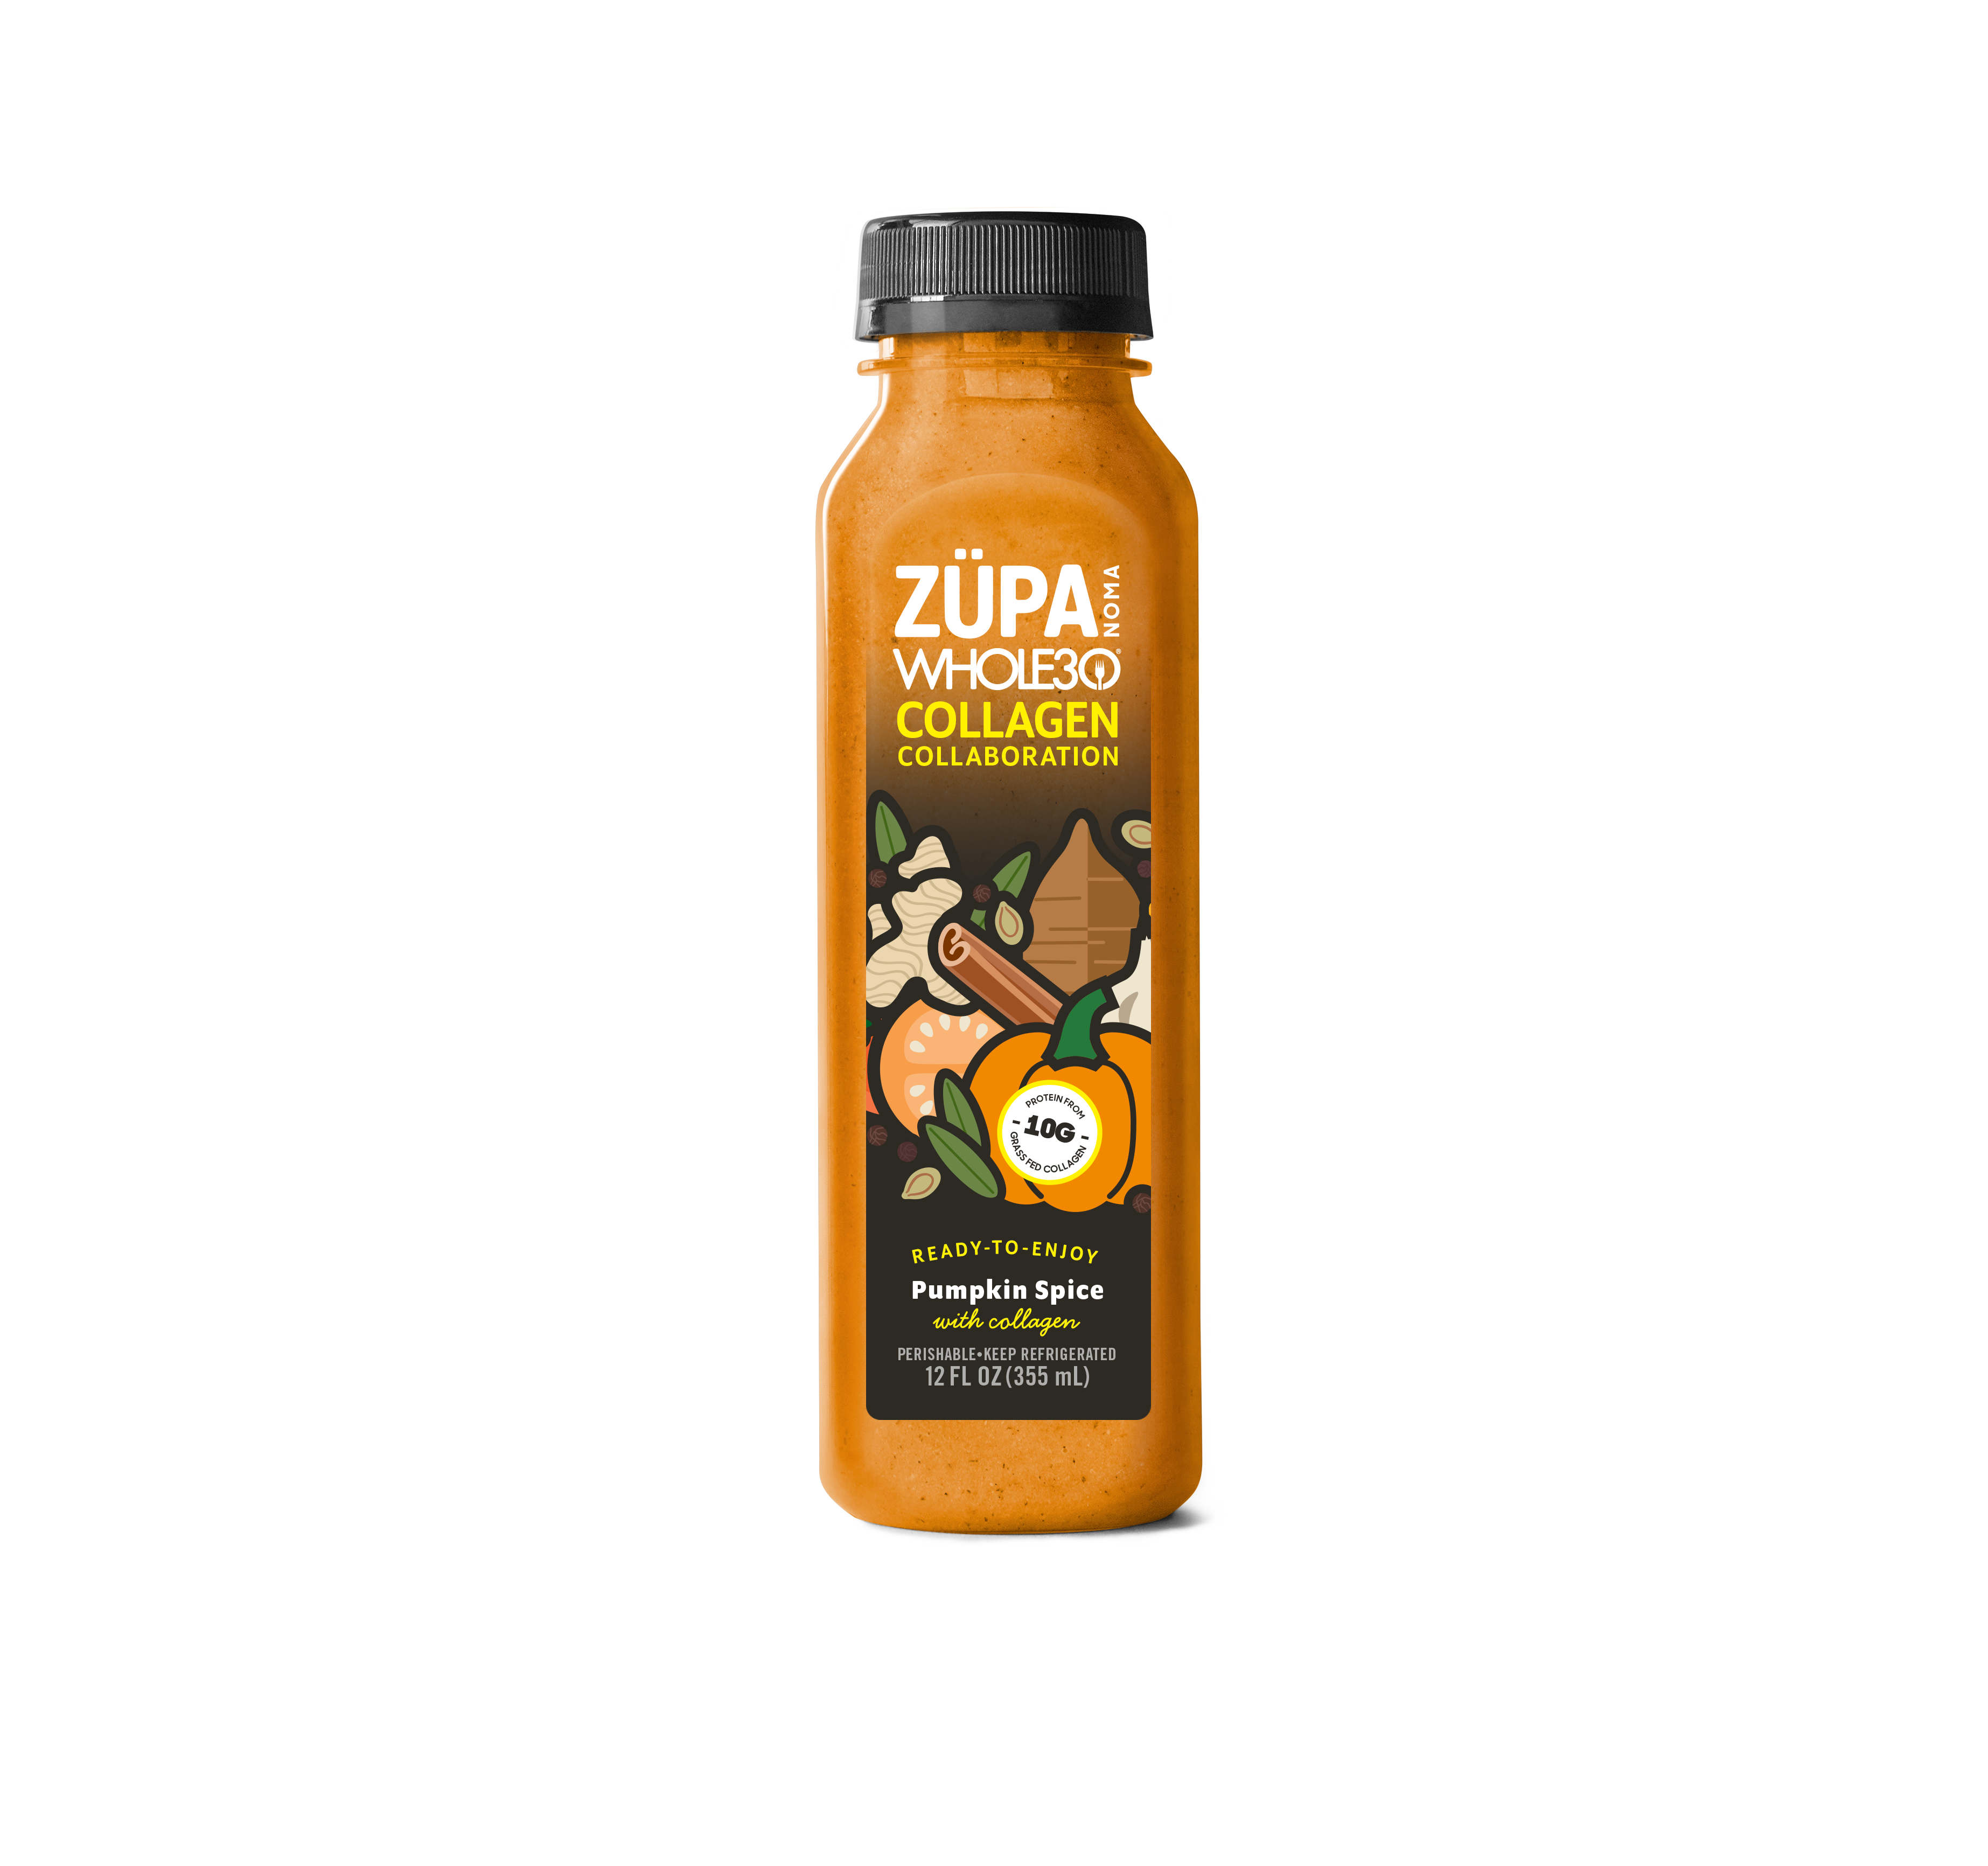 Zupa Noma Launches Pumpkin Spice with Collagen Flavor